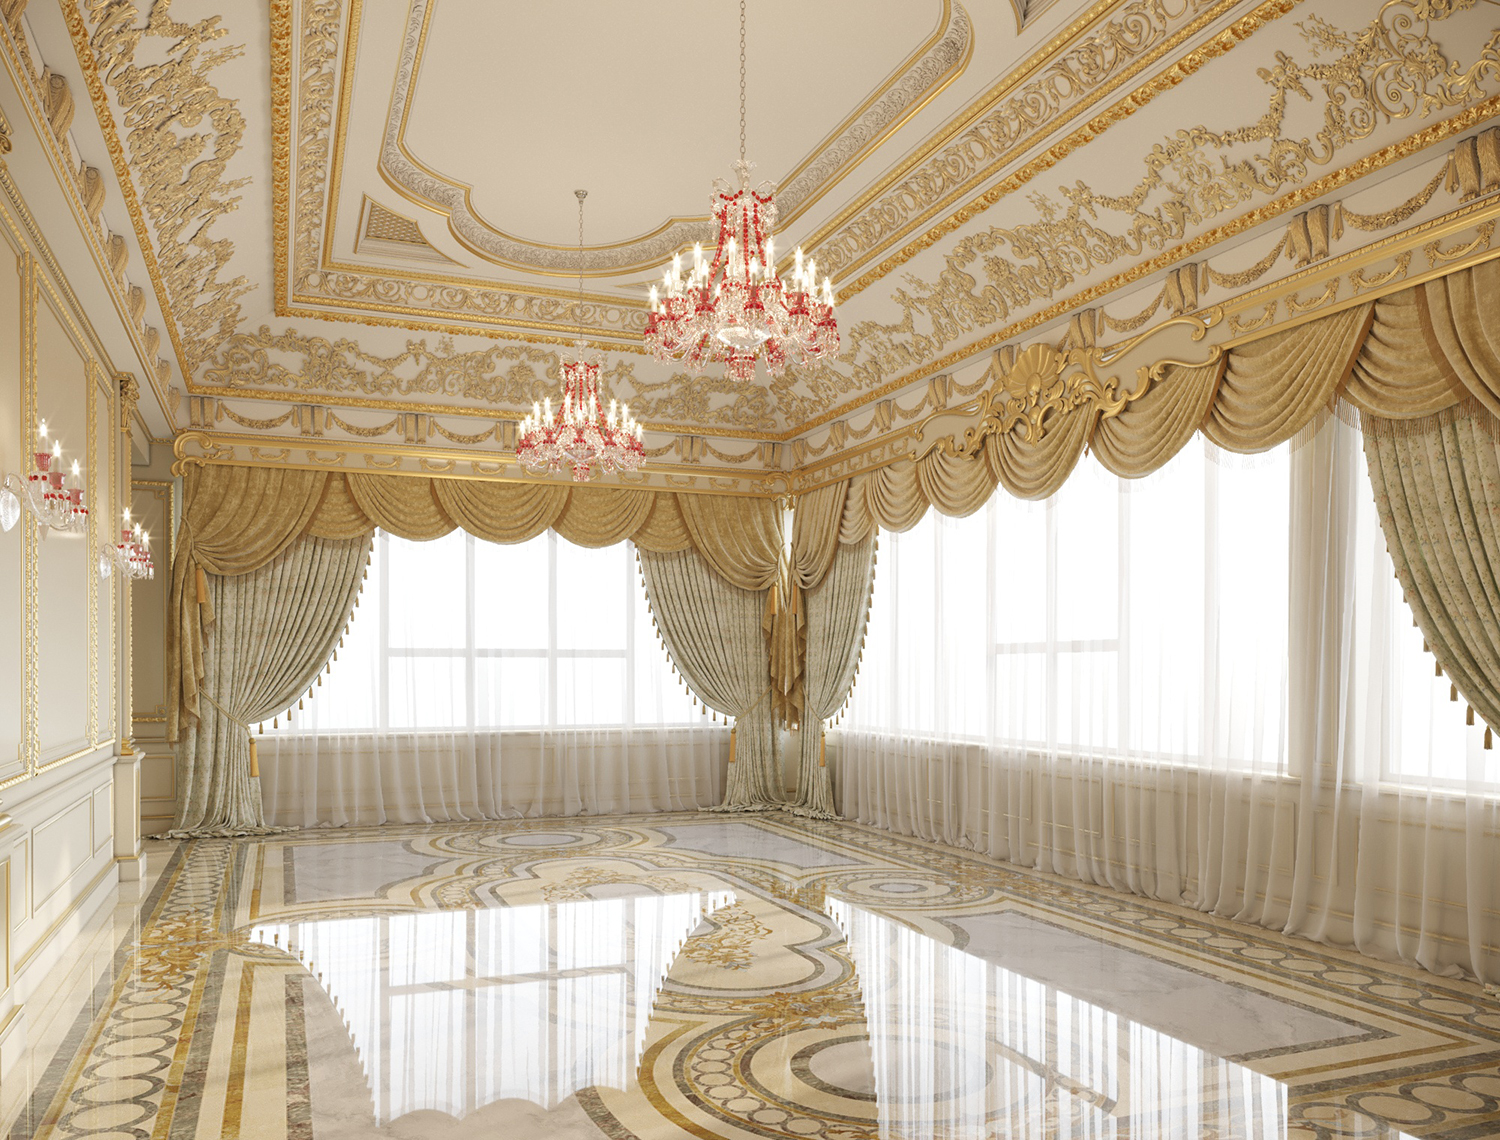 Custom Interior Design of Presidential Master Bedroom Suite with cream, beige and gold